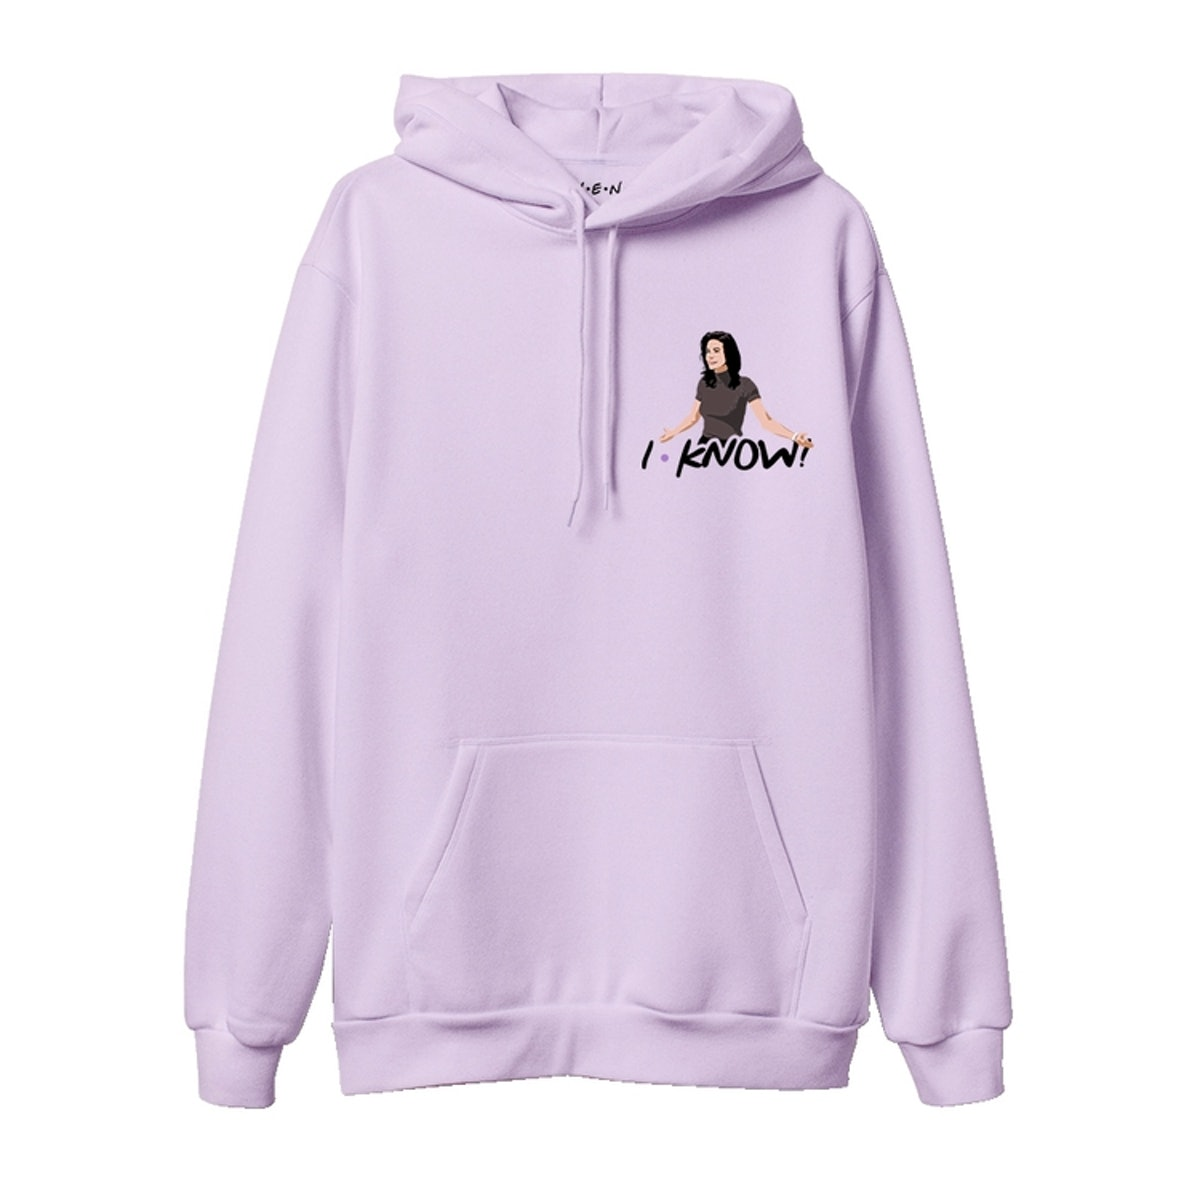 'Friends' Reunion Limited Edition Cast Collection I Know Hoodie